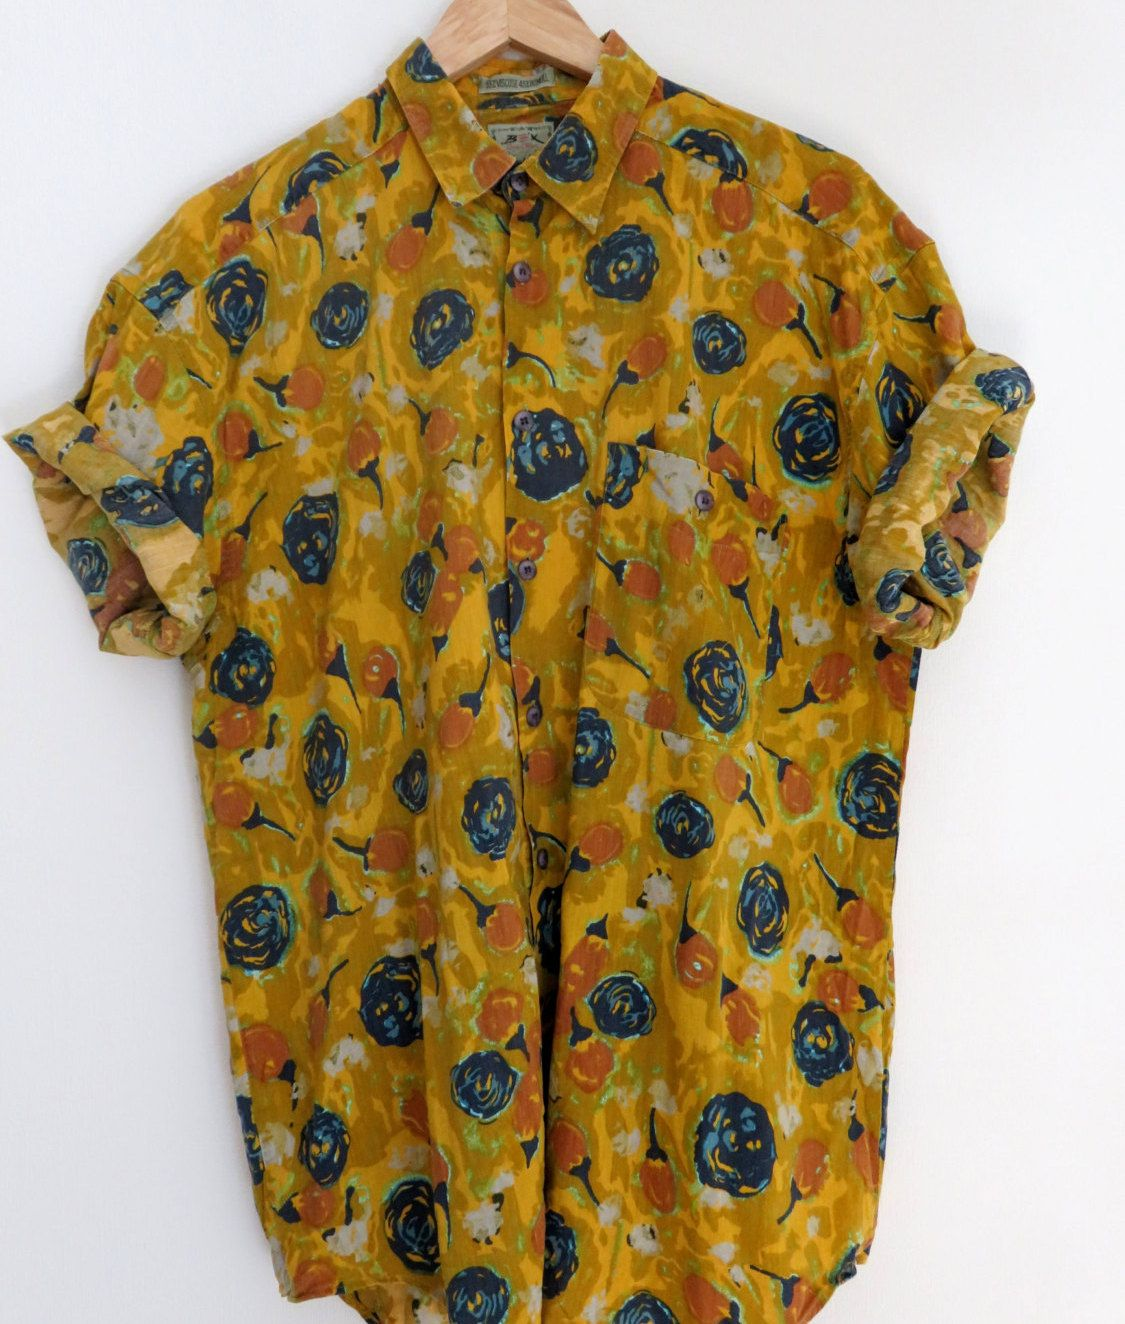 Vintage Men's 80s/90s short sleeve Button up shirt yellow ...